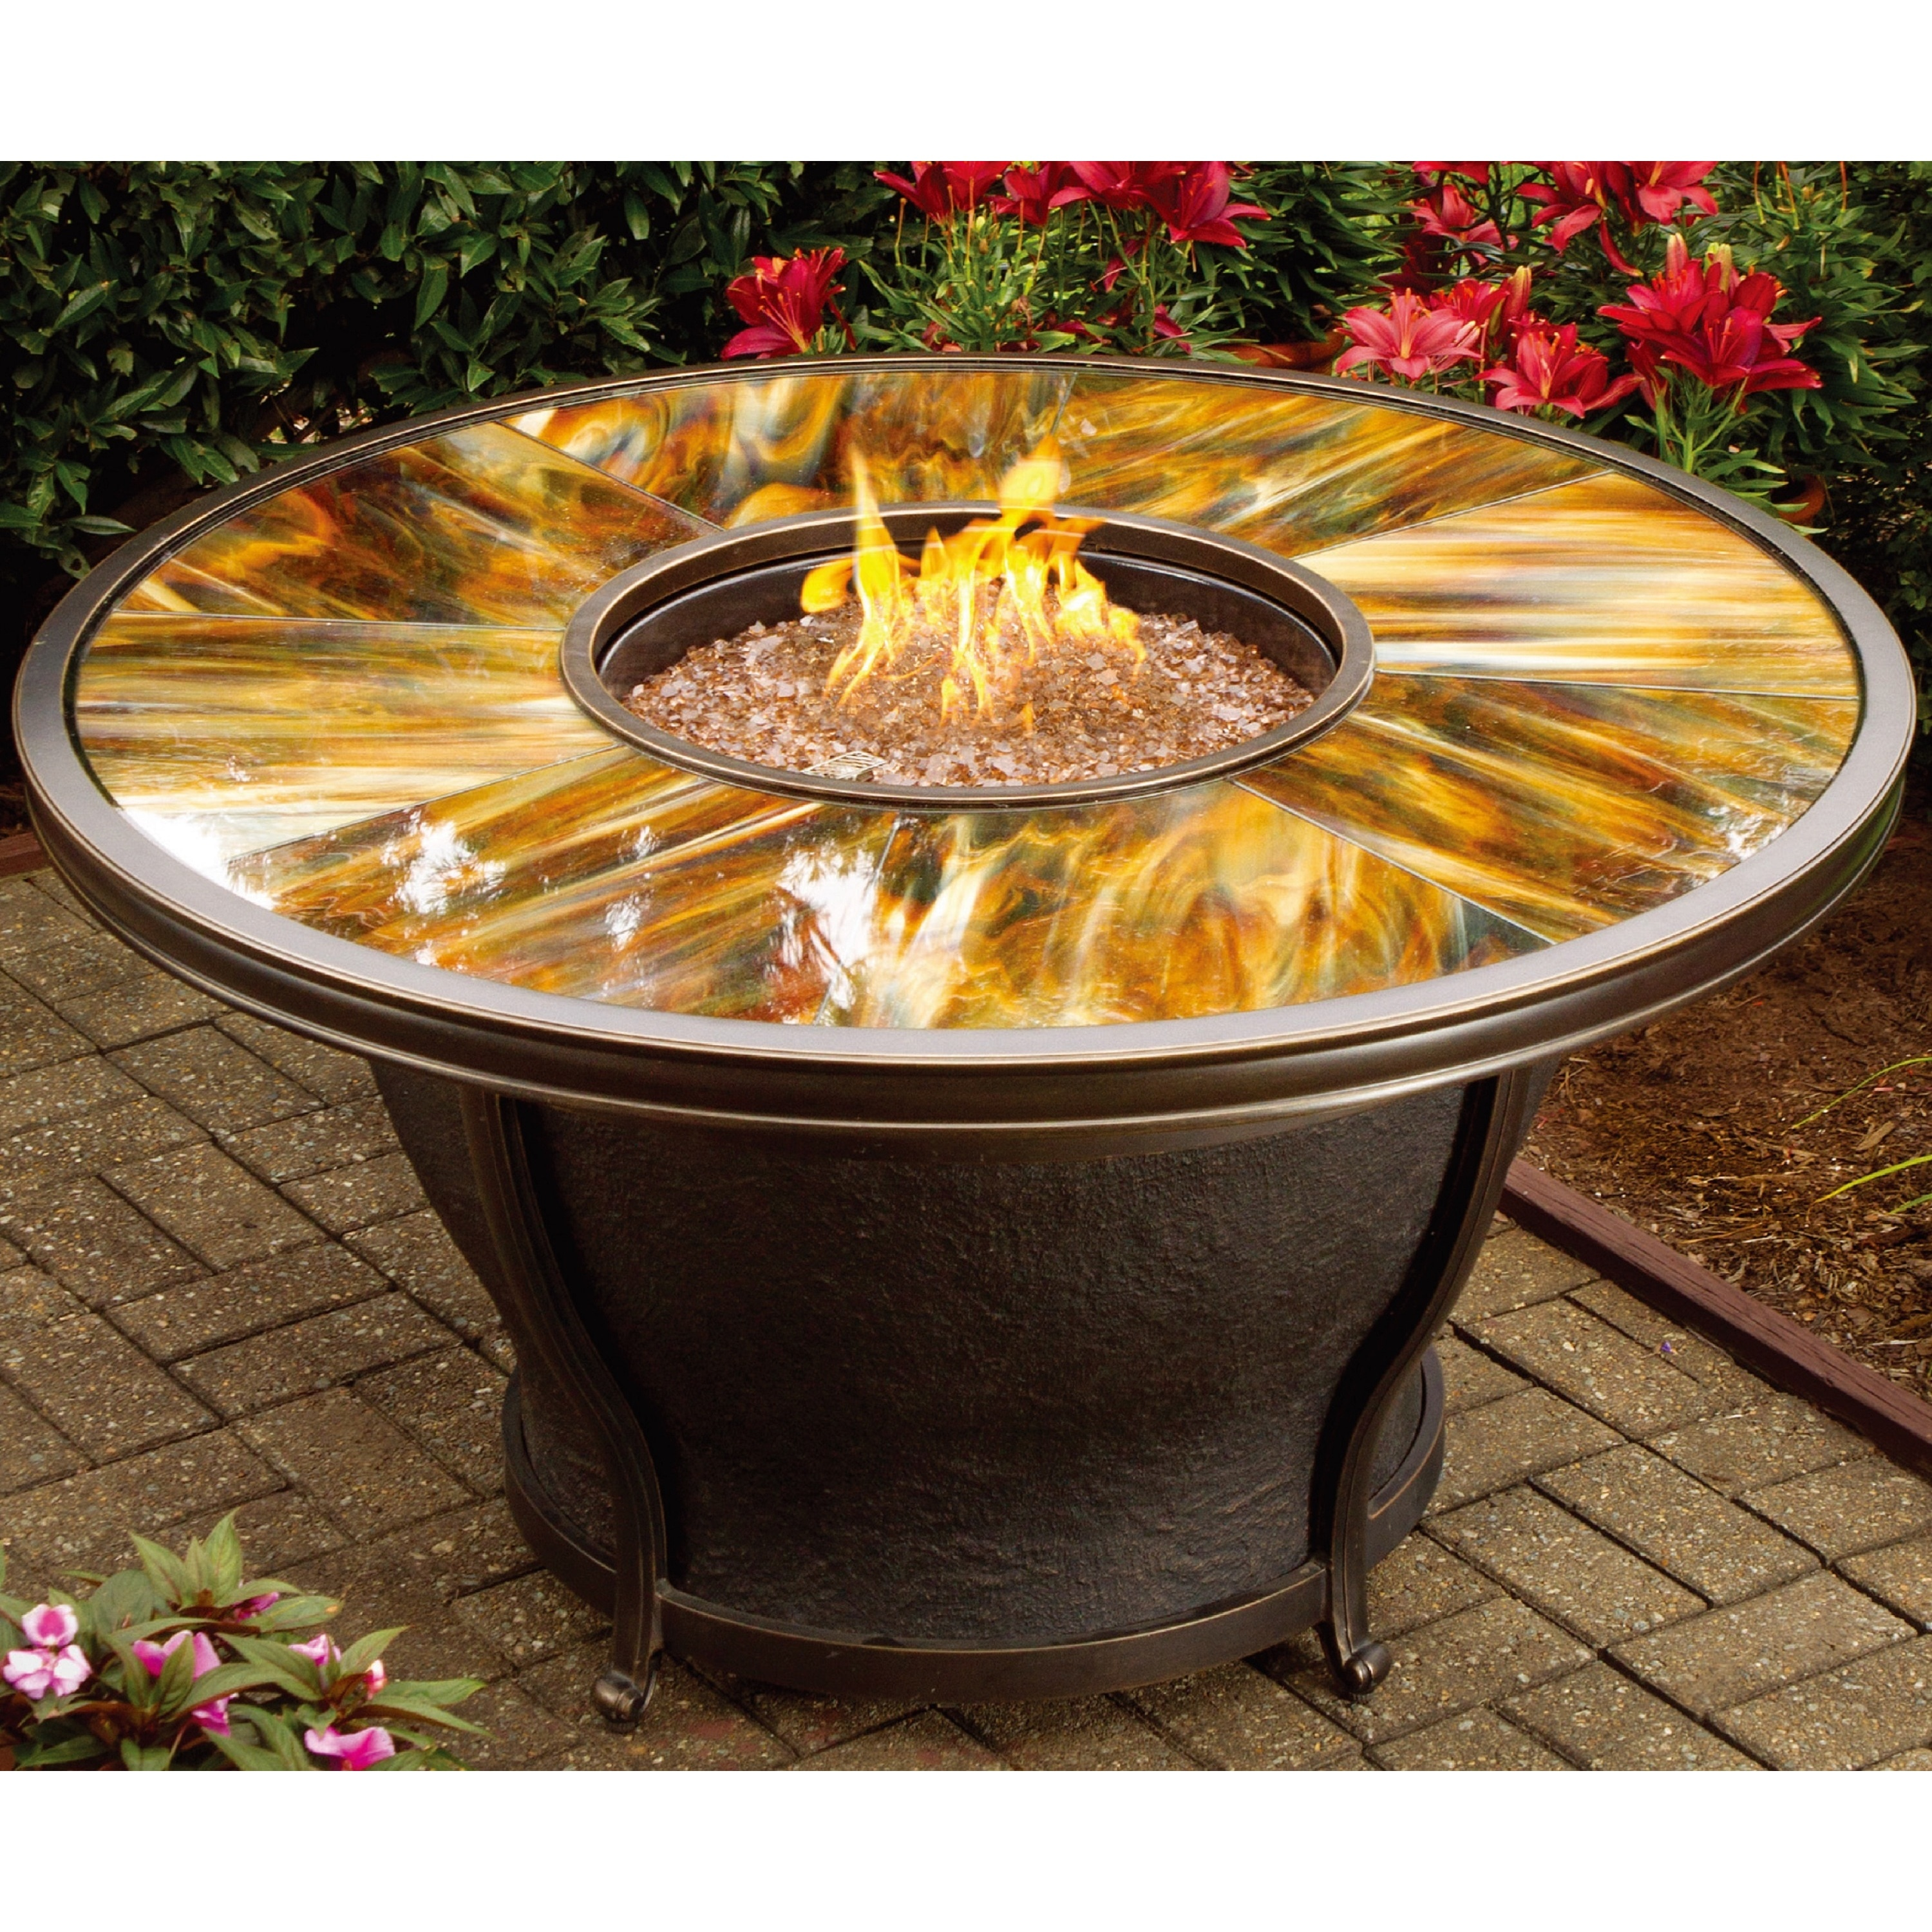 Shop Round Fire Pit Table, Glass Beads, Cover, Rocking Chairs And Cushions    Free Shipping Today   Overstock.com   11020047